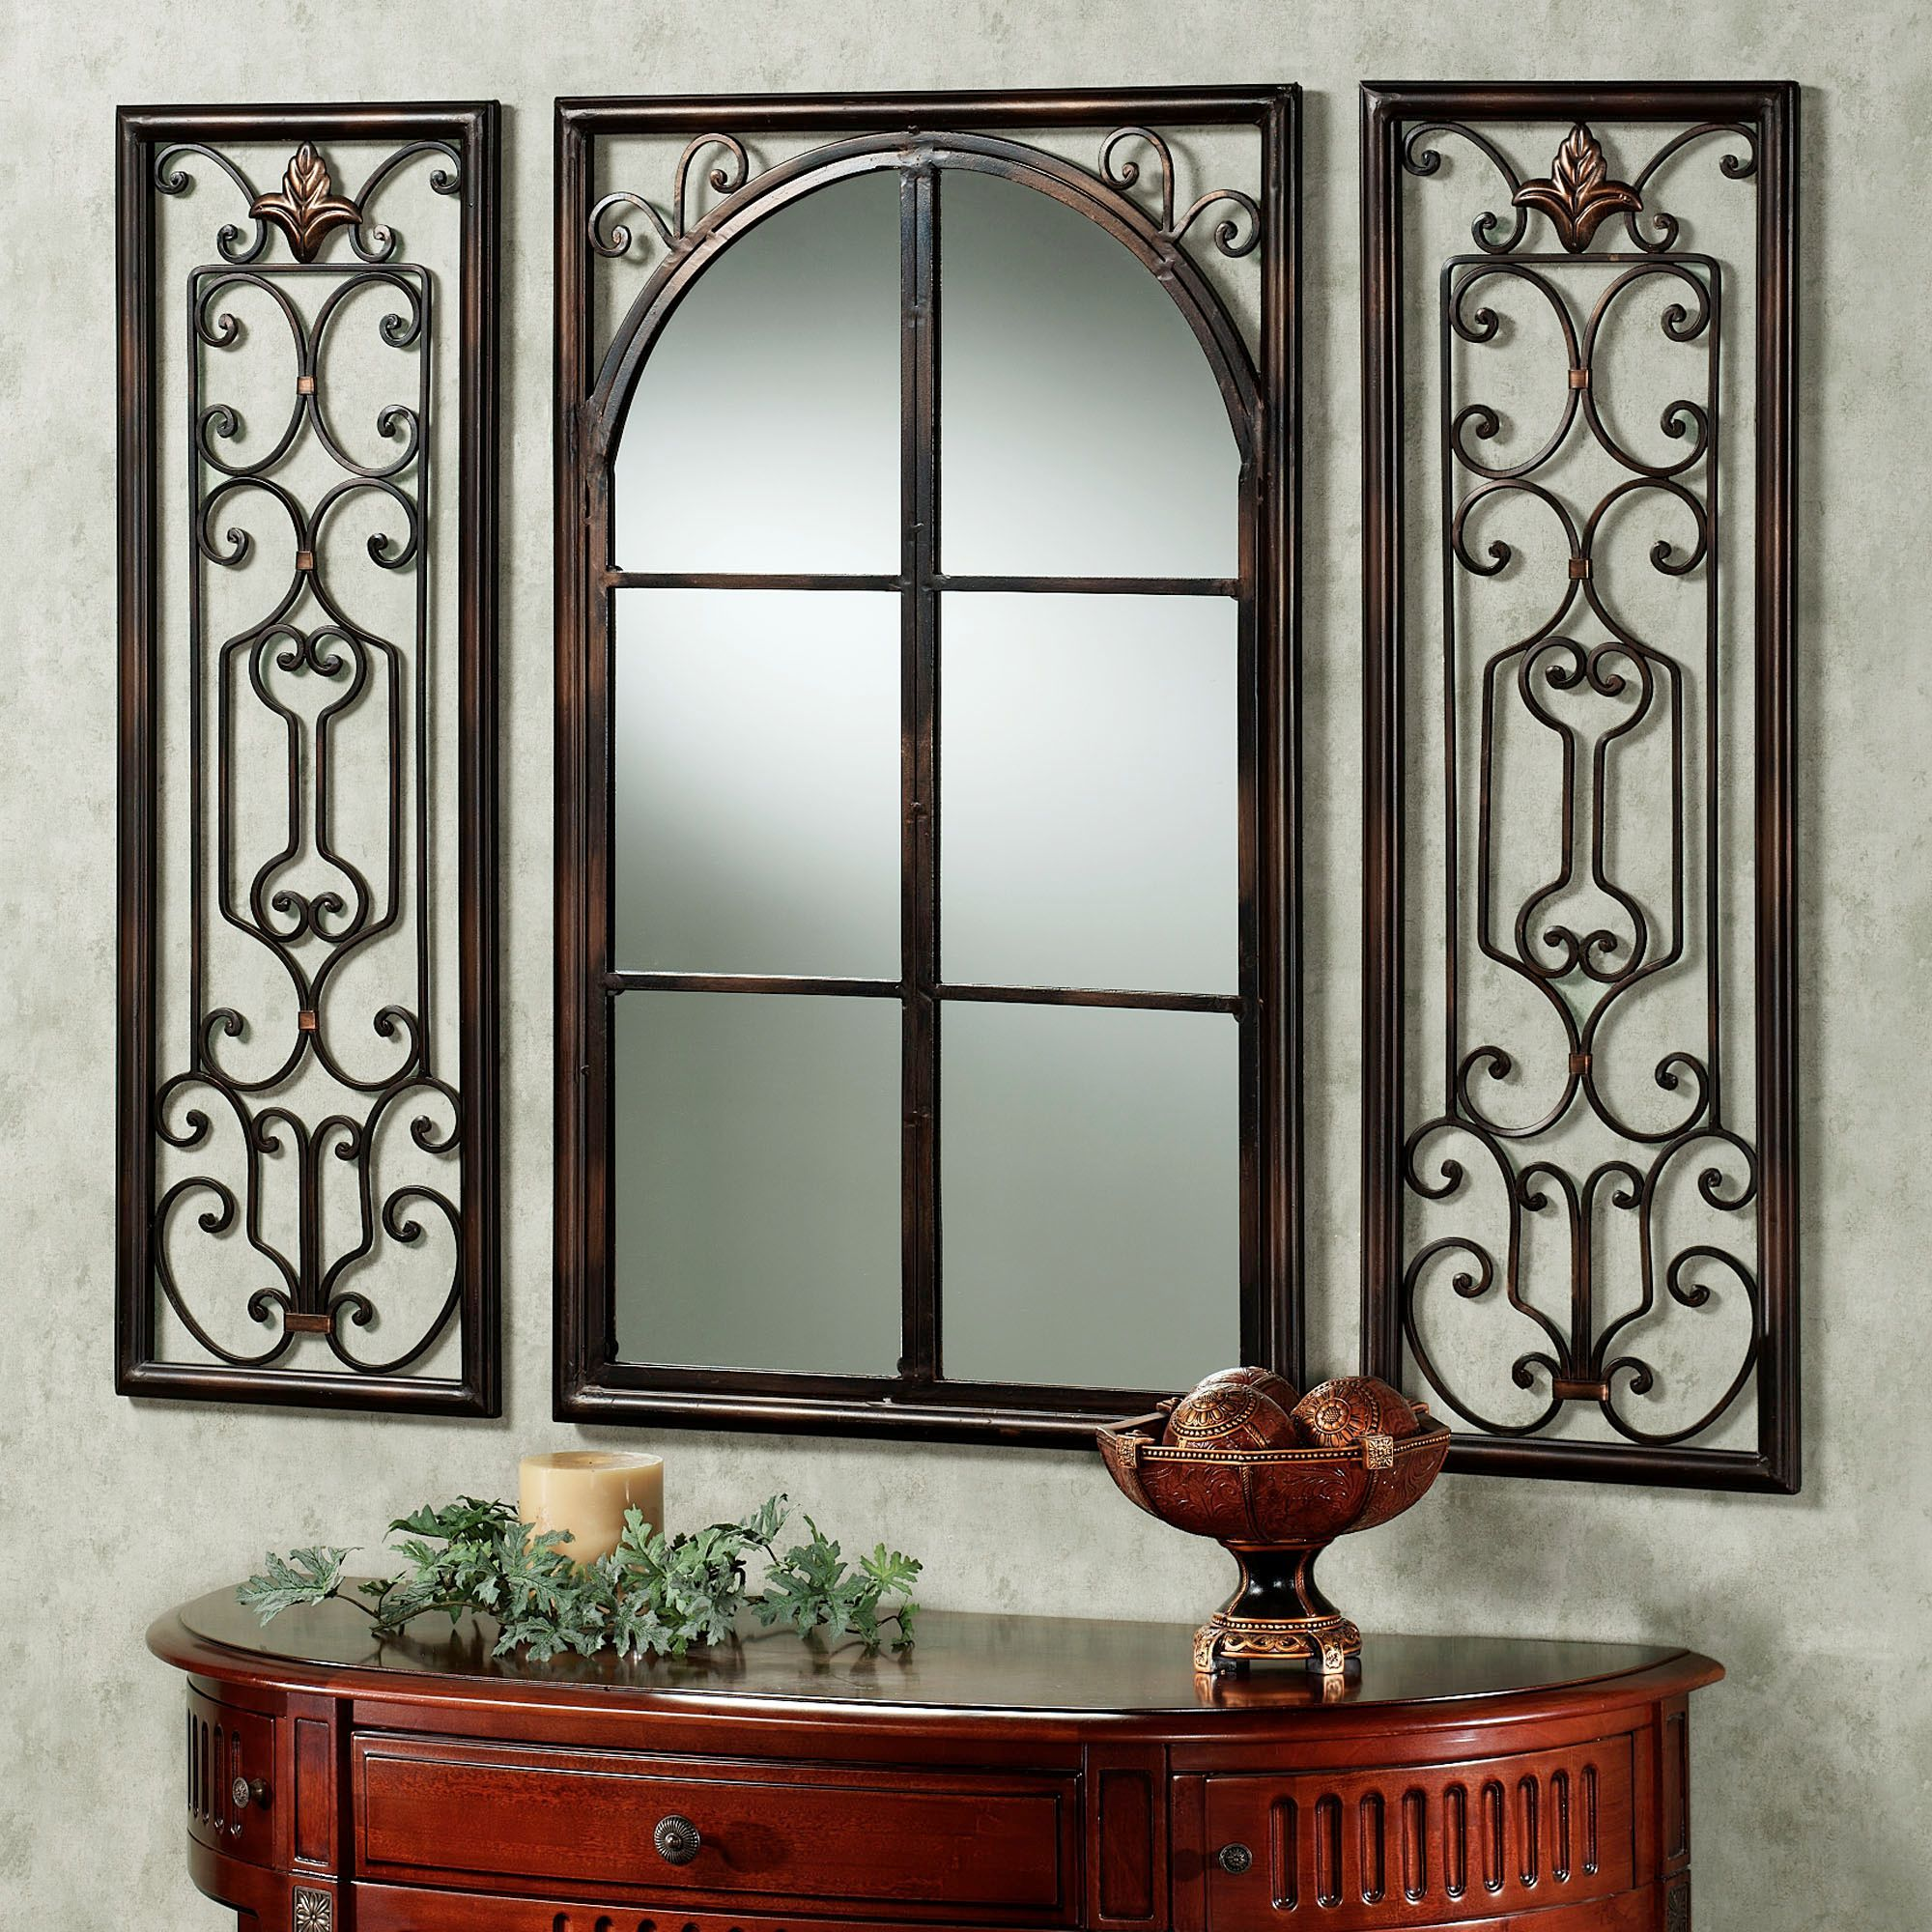 Provence Bronze Finish Wall Mirror Set in 2020 | Lighted ...